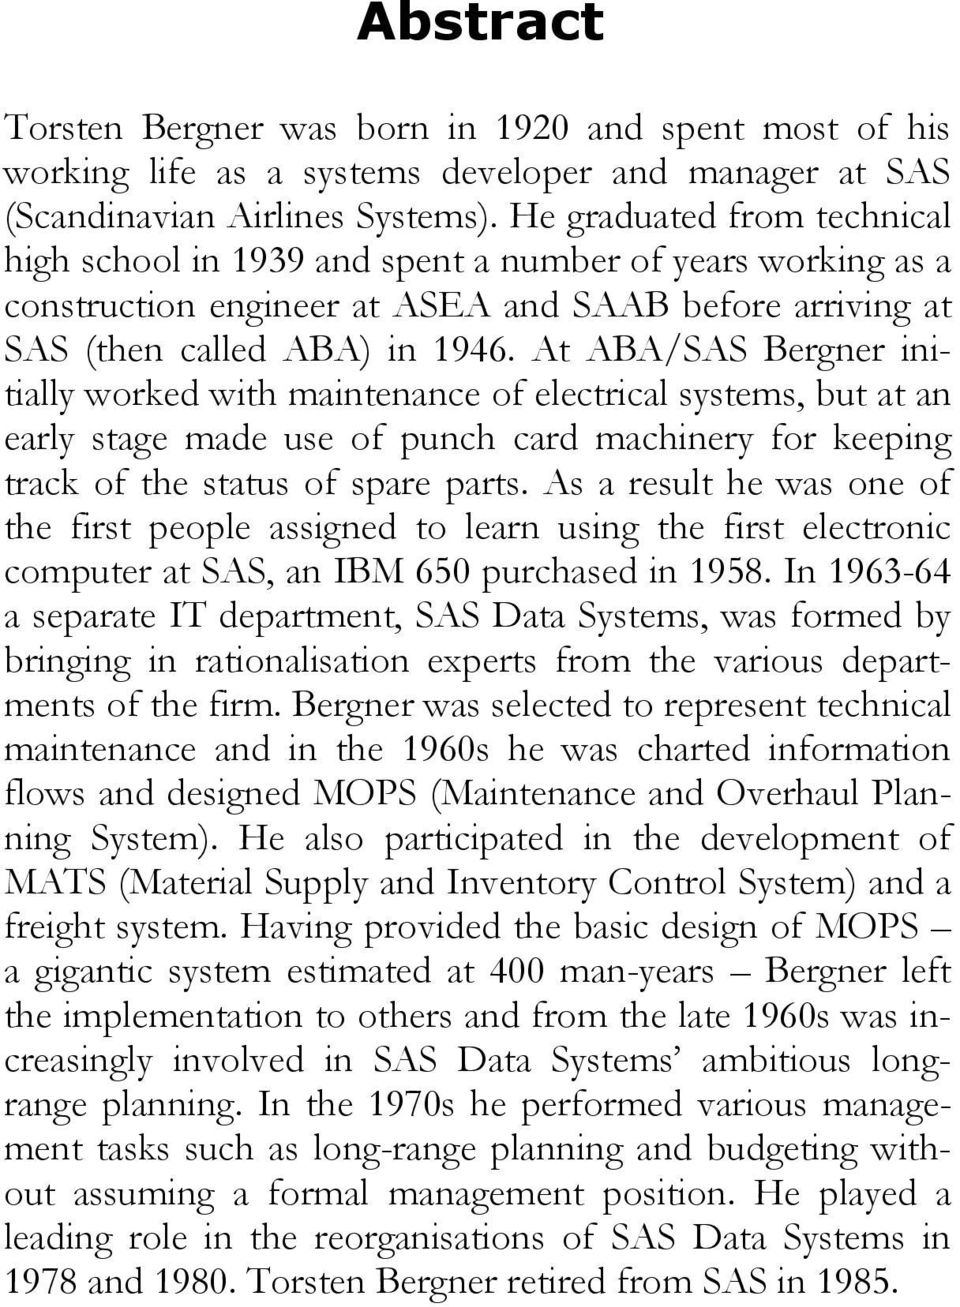 At ABA/SAS Bergner initially worked with maintenance of electrical systems, but at an early stage made use of punch card machinery for keeping track of the status of spare parts.